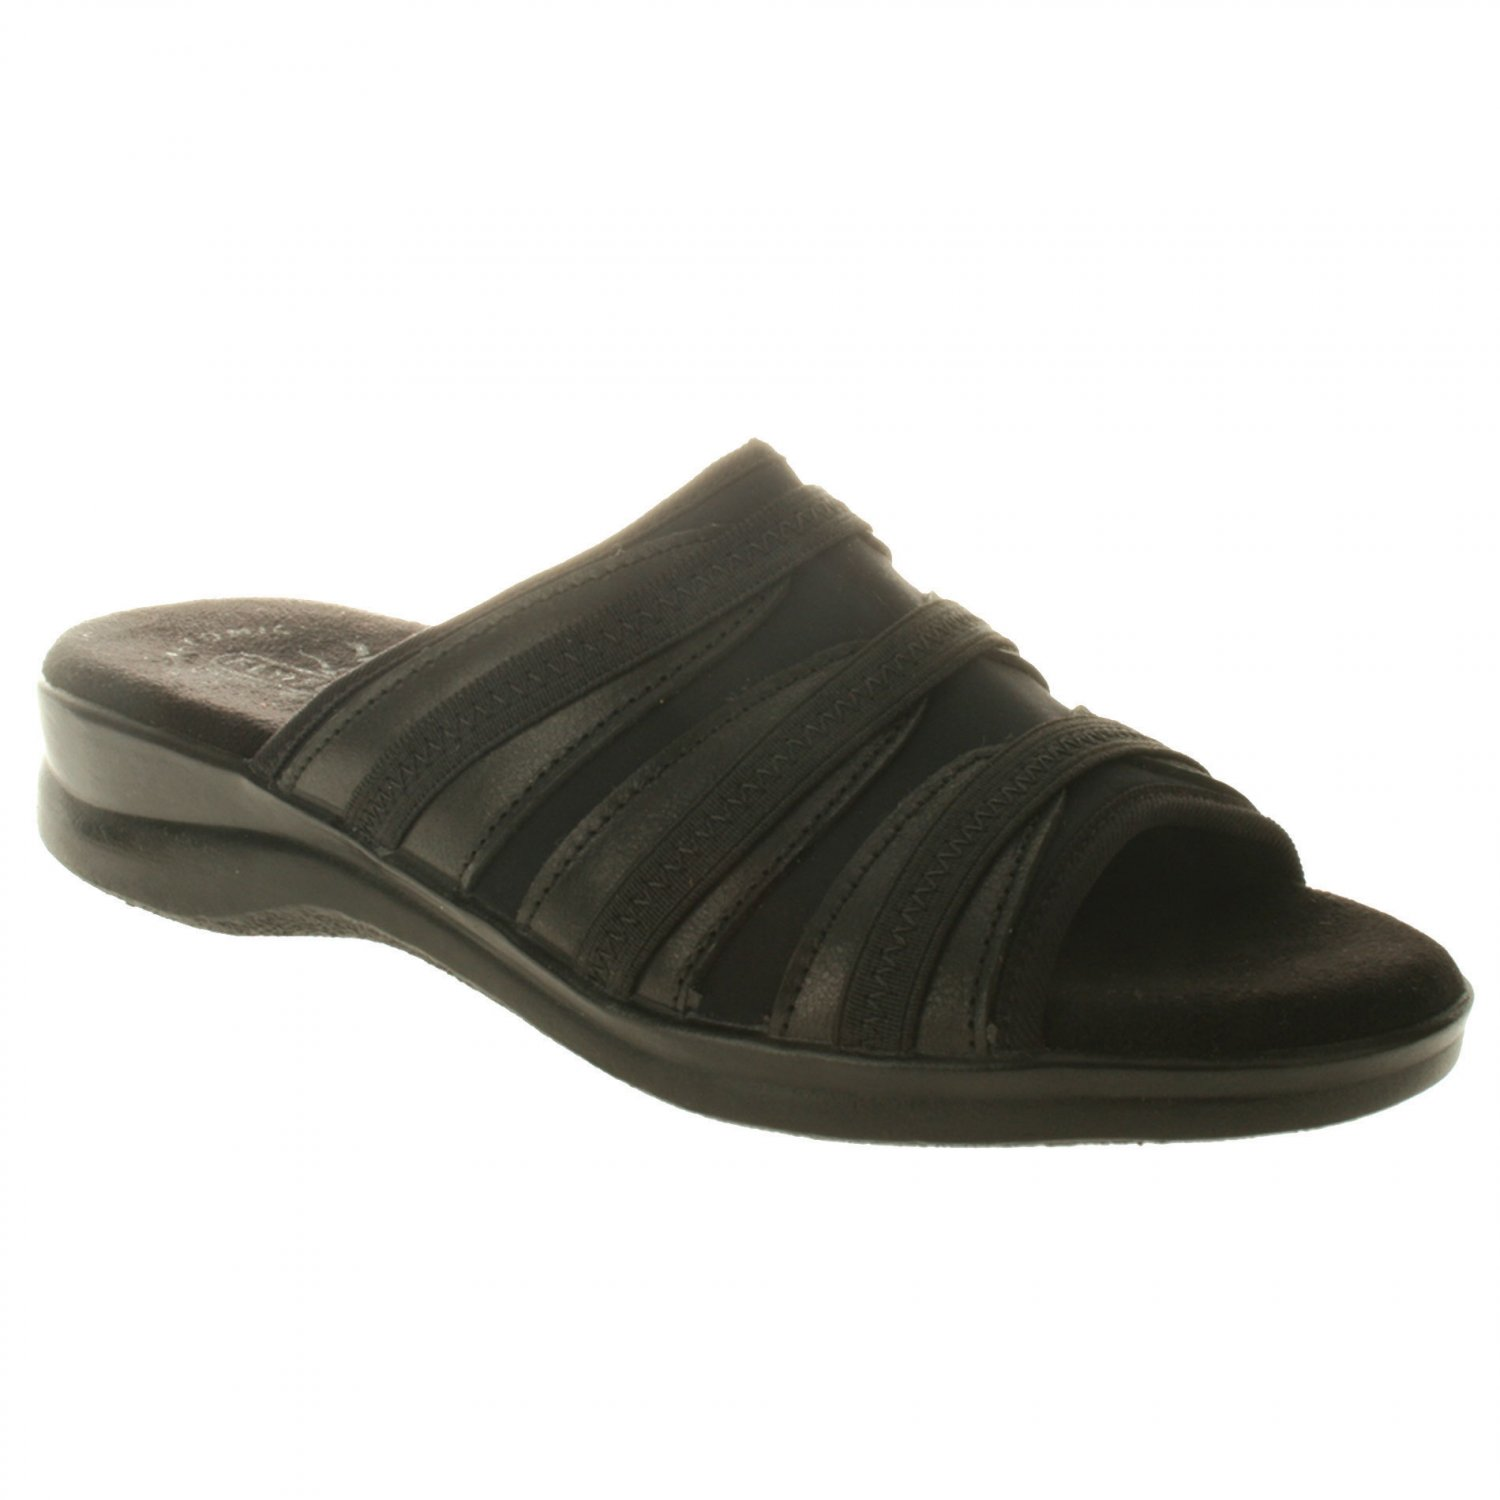 FLY FLOT CAPE Slippers Shoes All Sizes & Colors $69.99